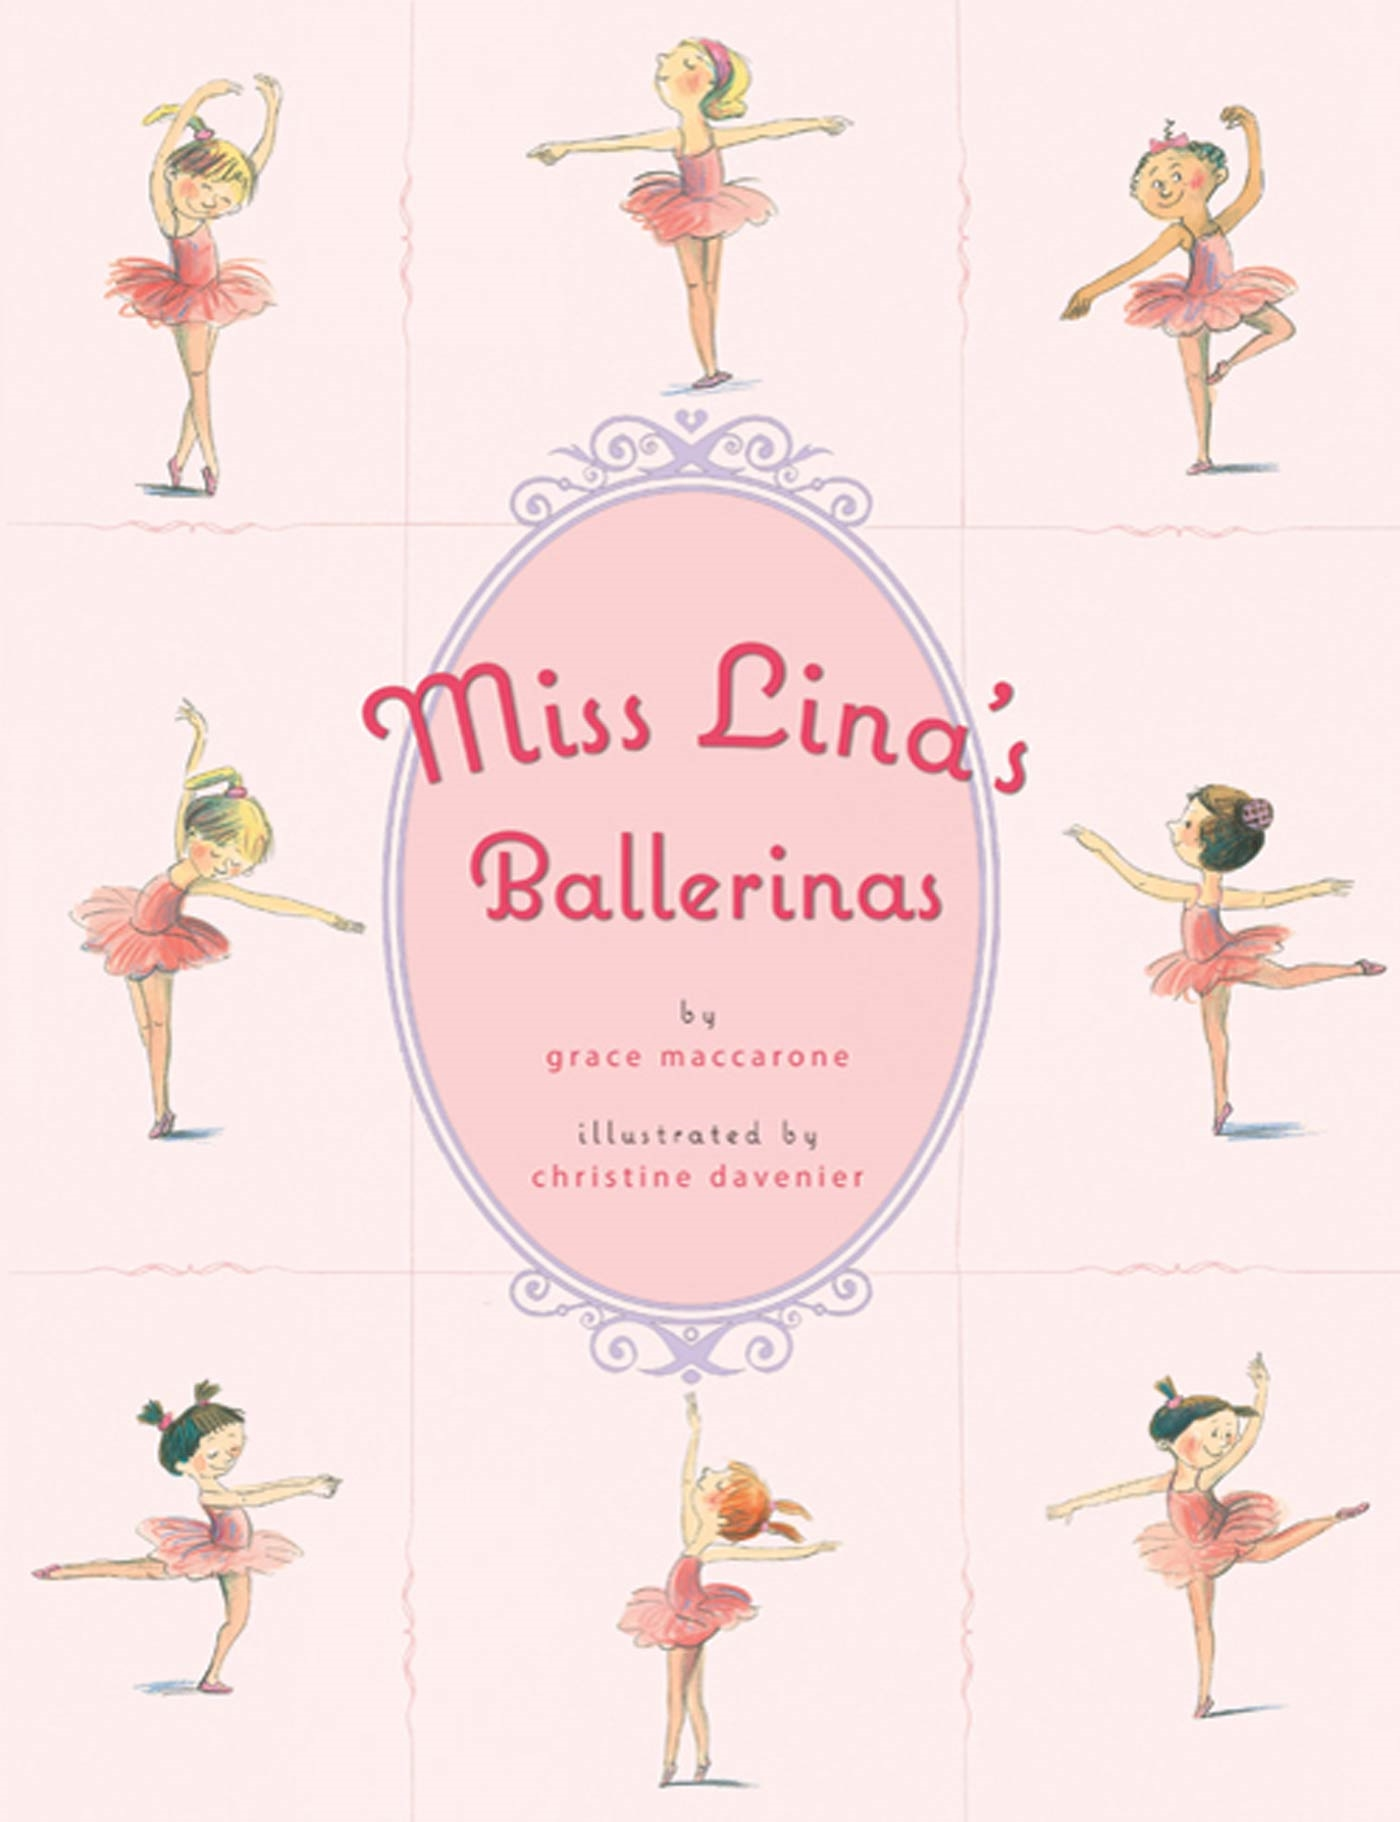 Miss Lina's Ballerinas, Valentine's Day Books for Kids